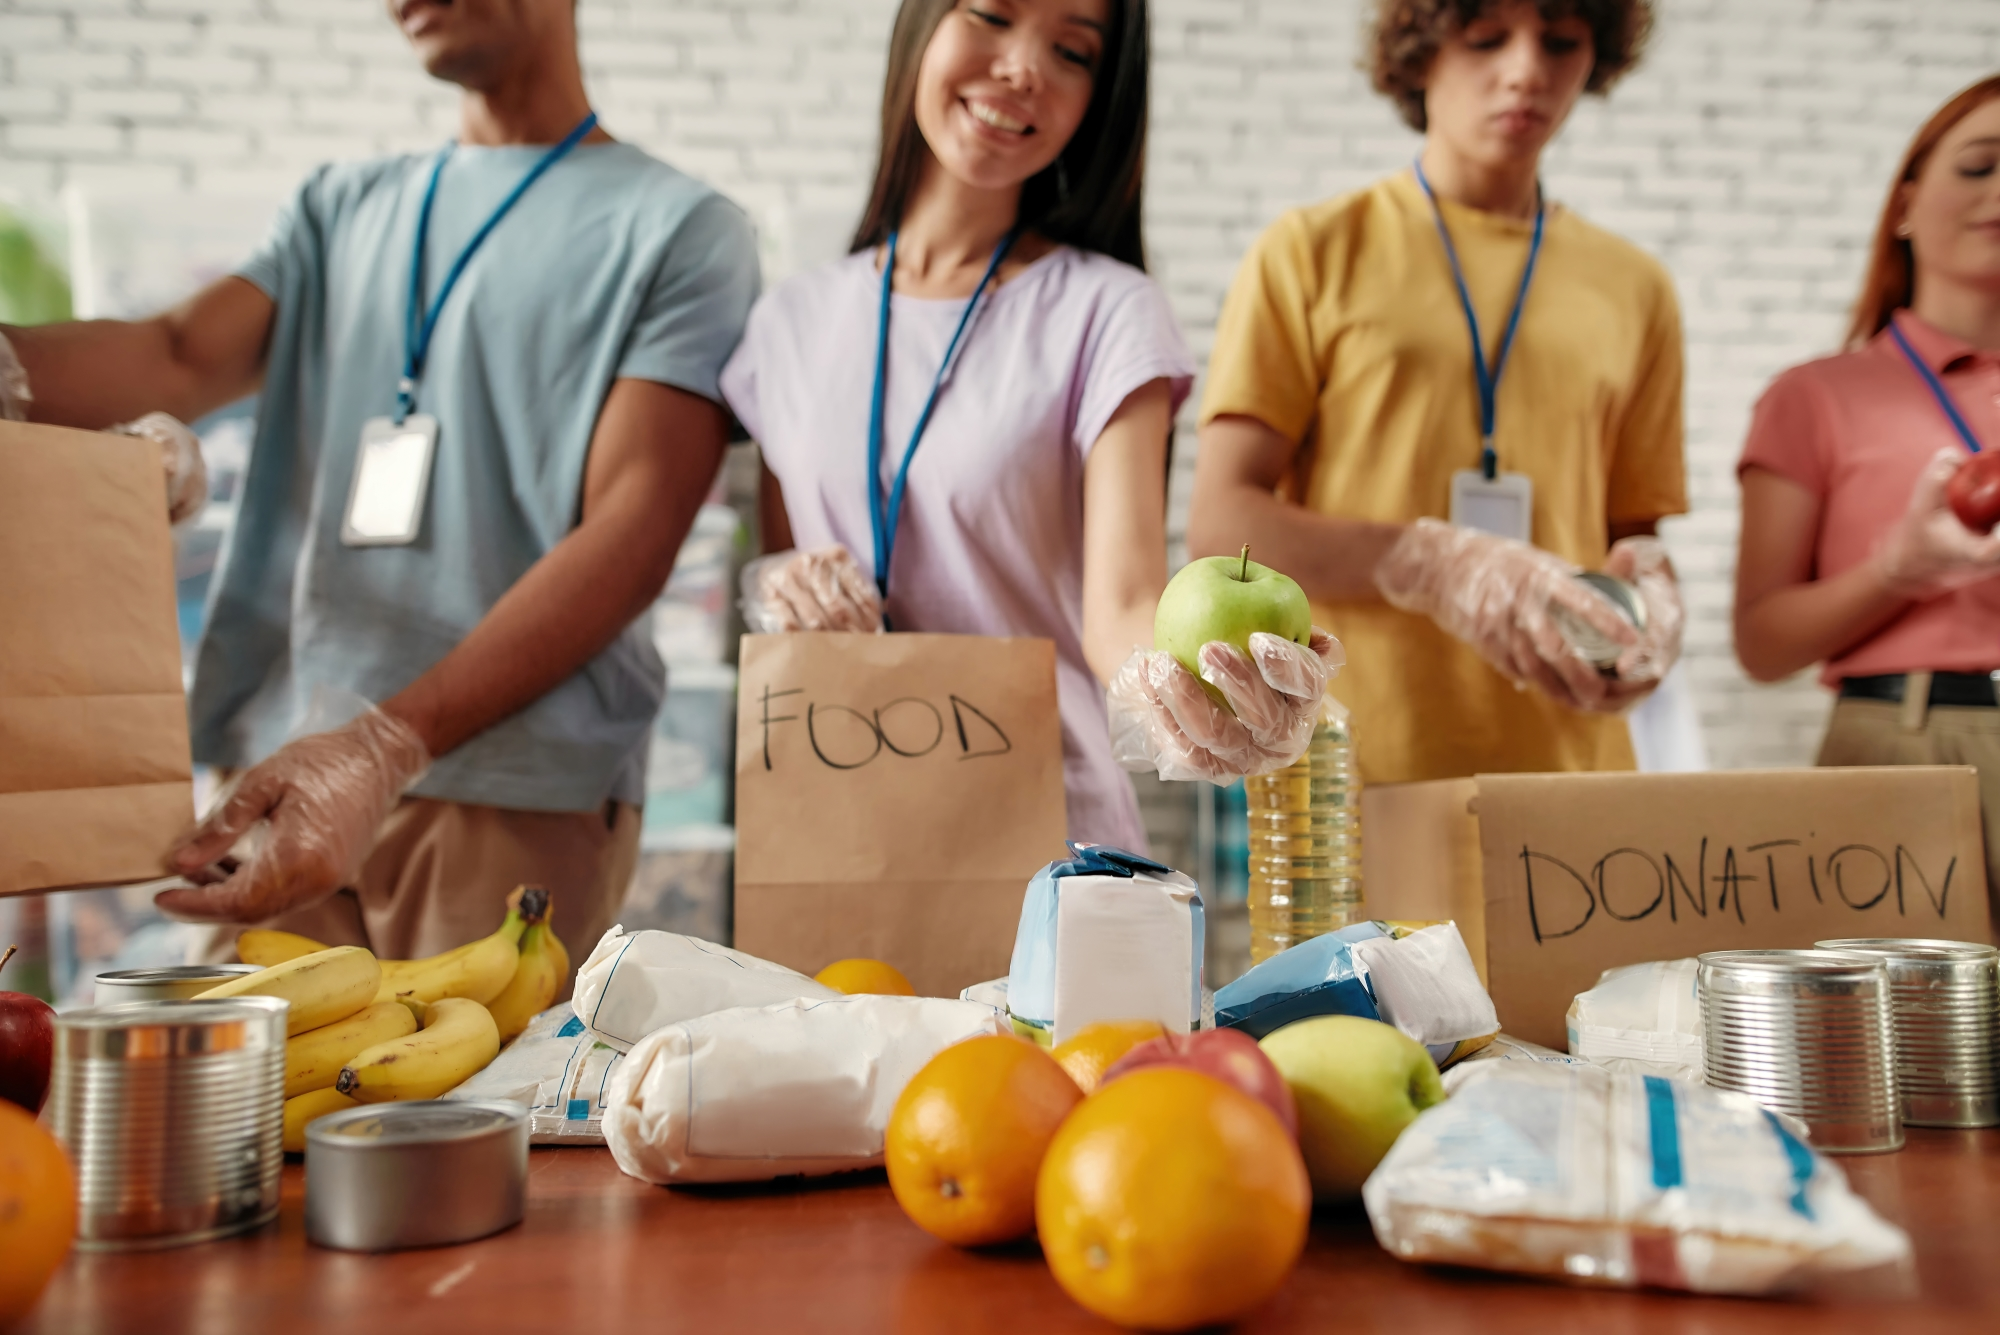 Young people volunteering to sort food donations